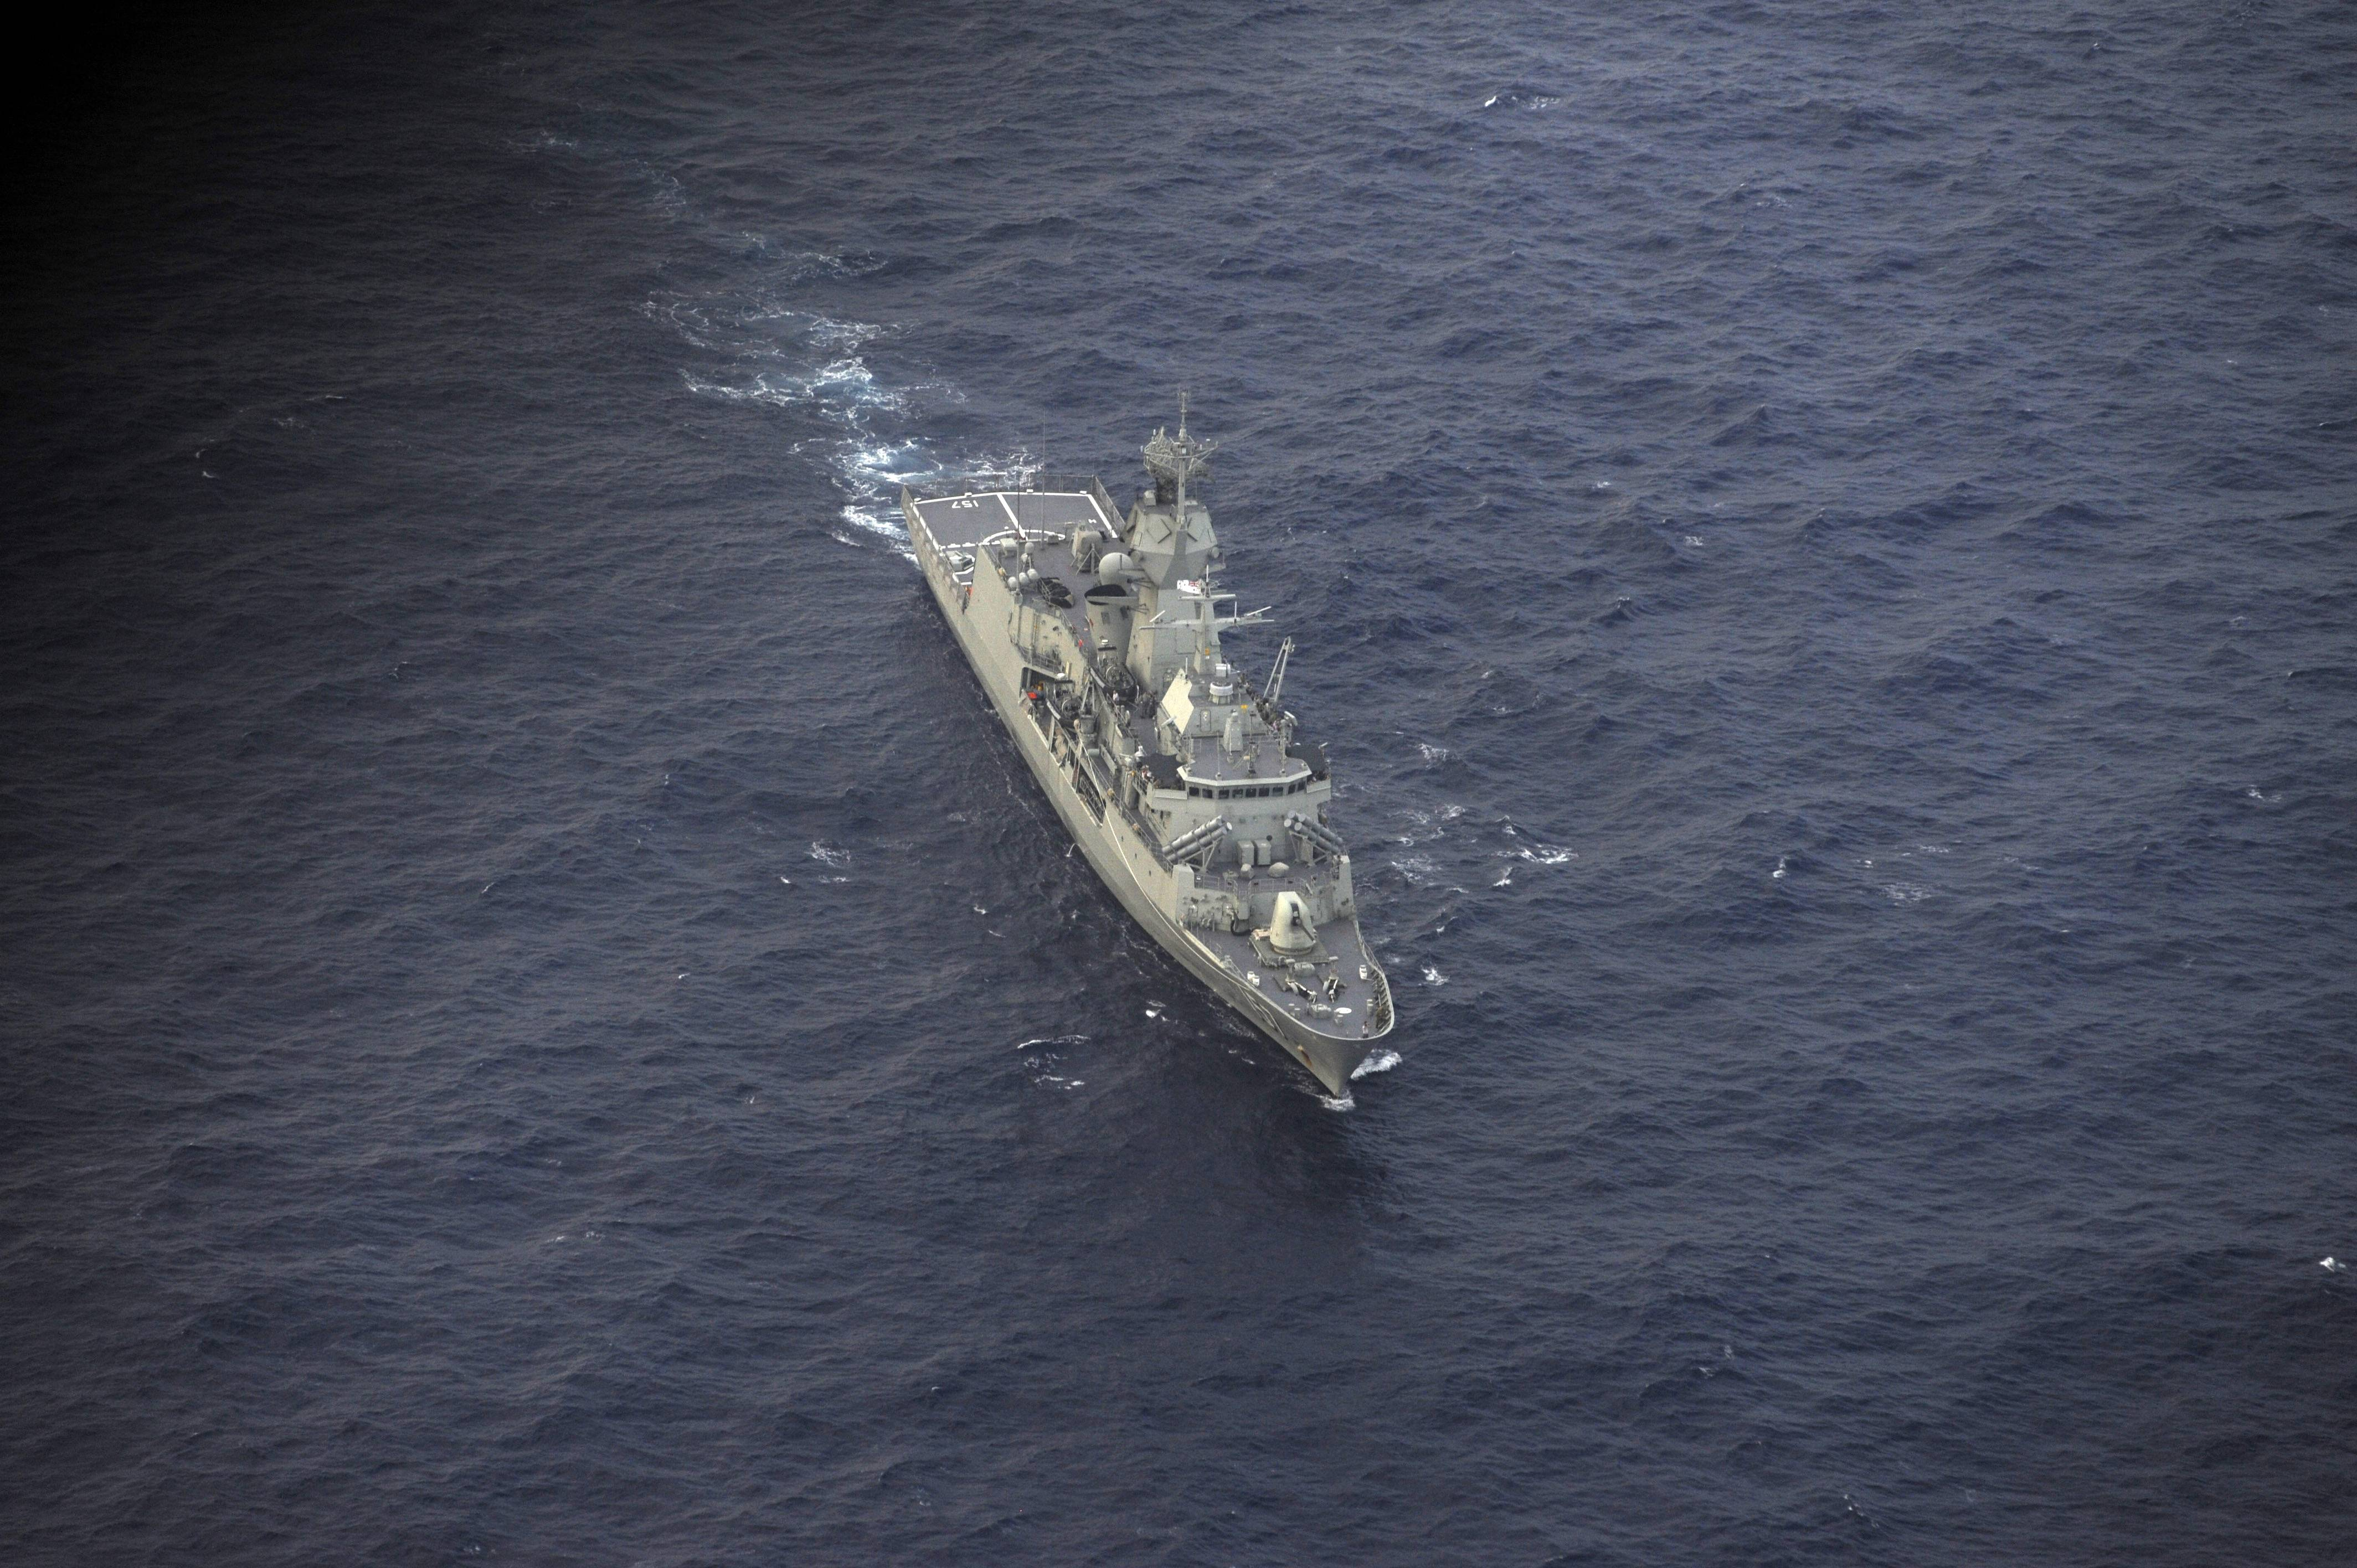 Australian ship HMAS Perth sails into position to retrieve a red object spotted by the RNZAF plane during the search for debris from missing Malaysia Airlines Flight 370, in the Indian Ocean off the coast of western Australia on Sunday. The hunt for the missing Malaysian airliner continued to focus Monday on a search for weakening radio signals from deep beneath the waves despite mounting evidence that the batteries in the plane's all-important black boxes may finally have died.